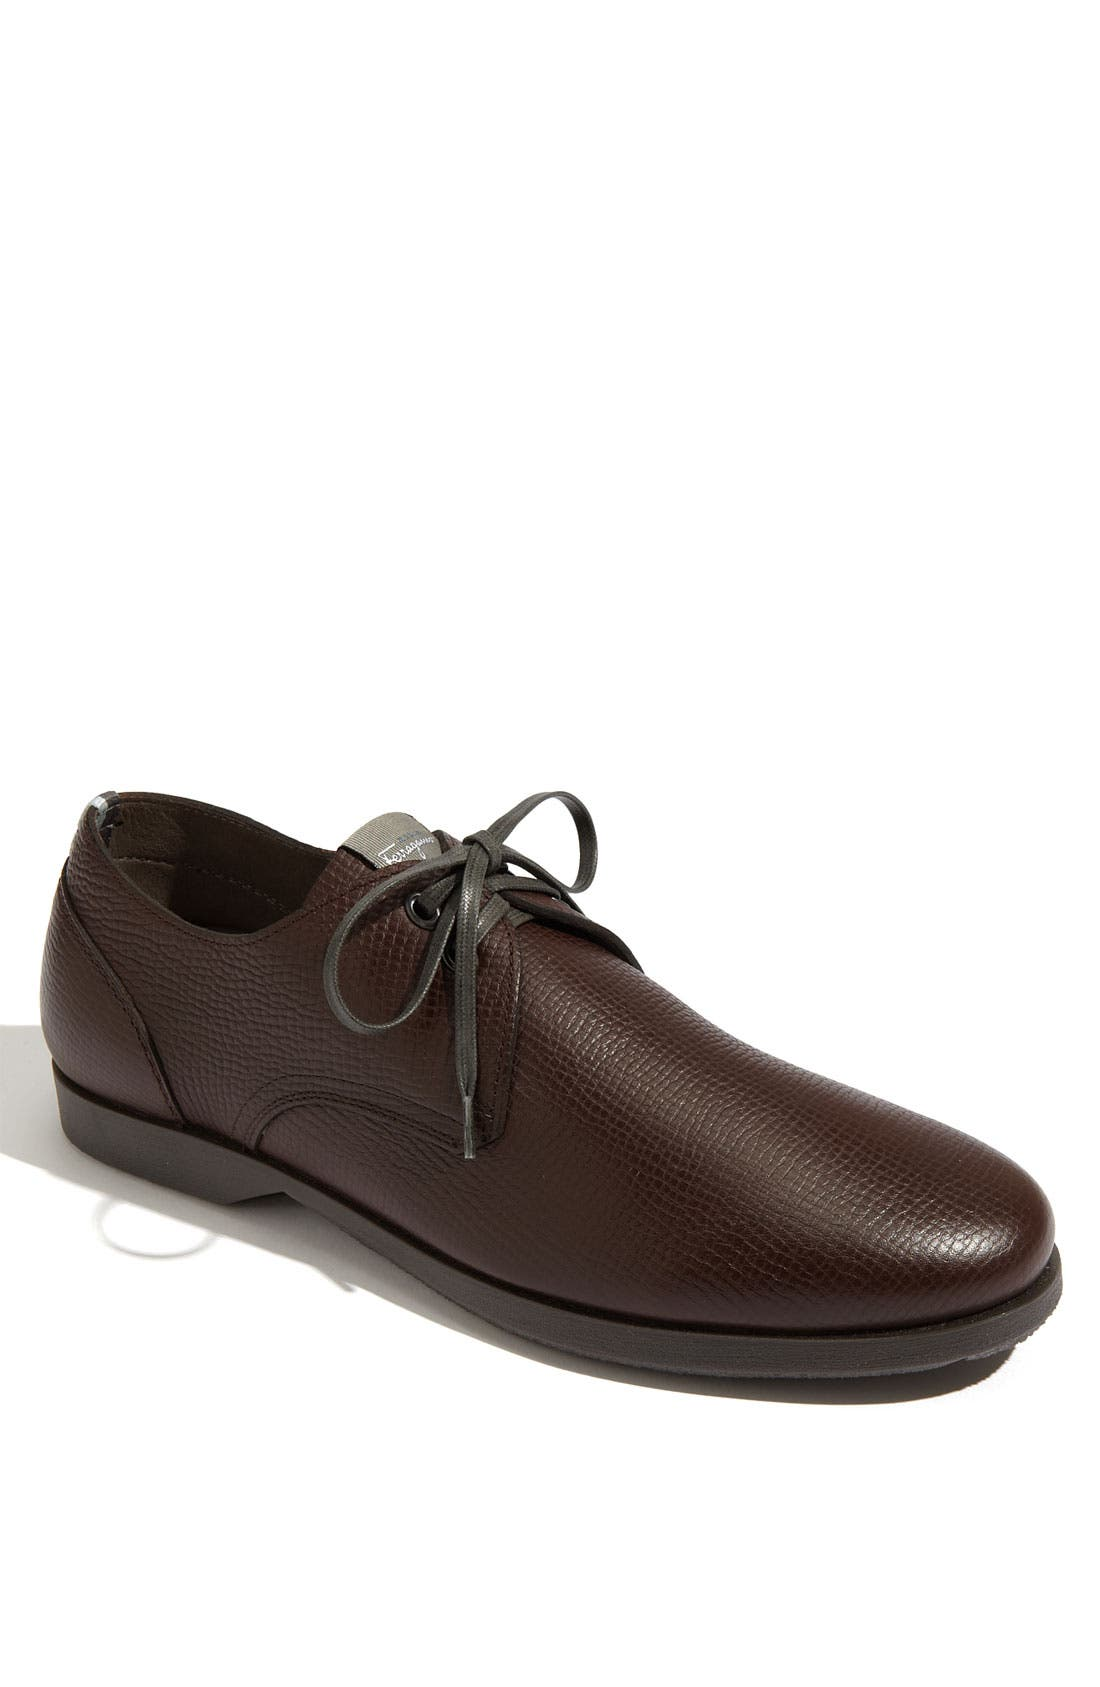 Main Image - Salvatore Ferragamo 'Motion' Oxford